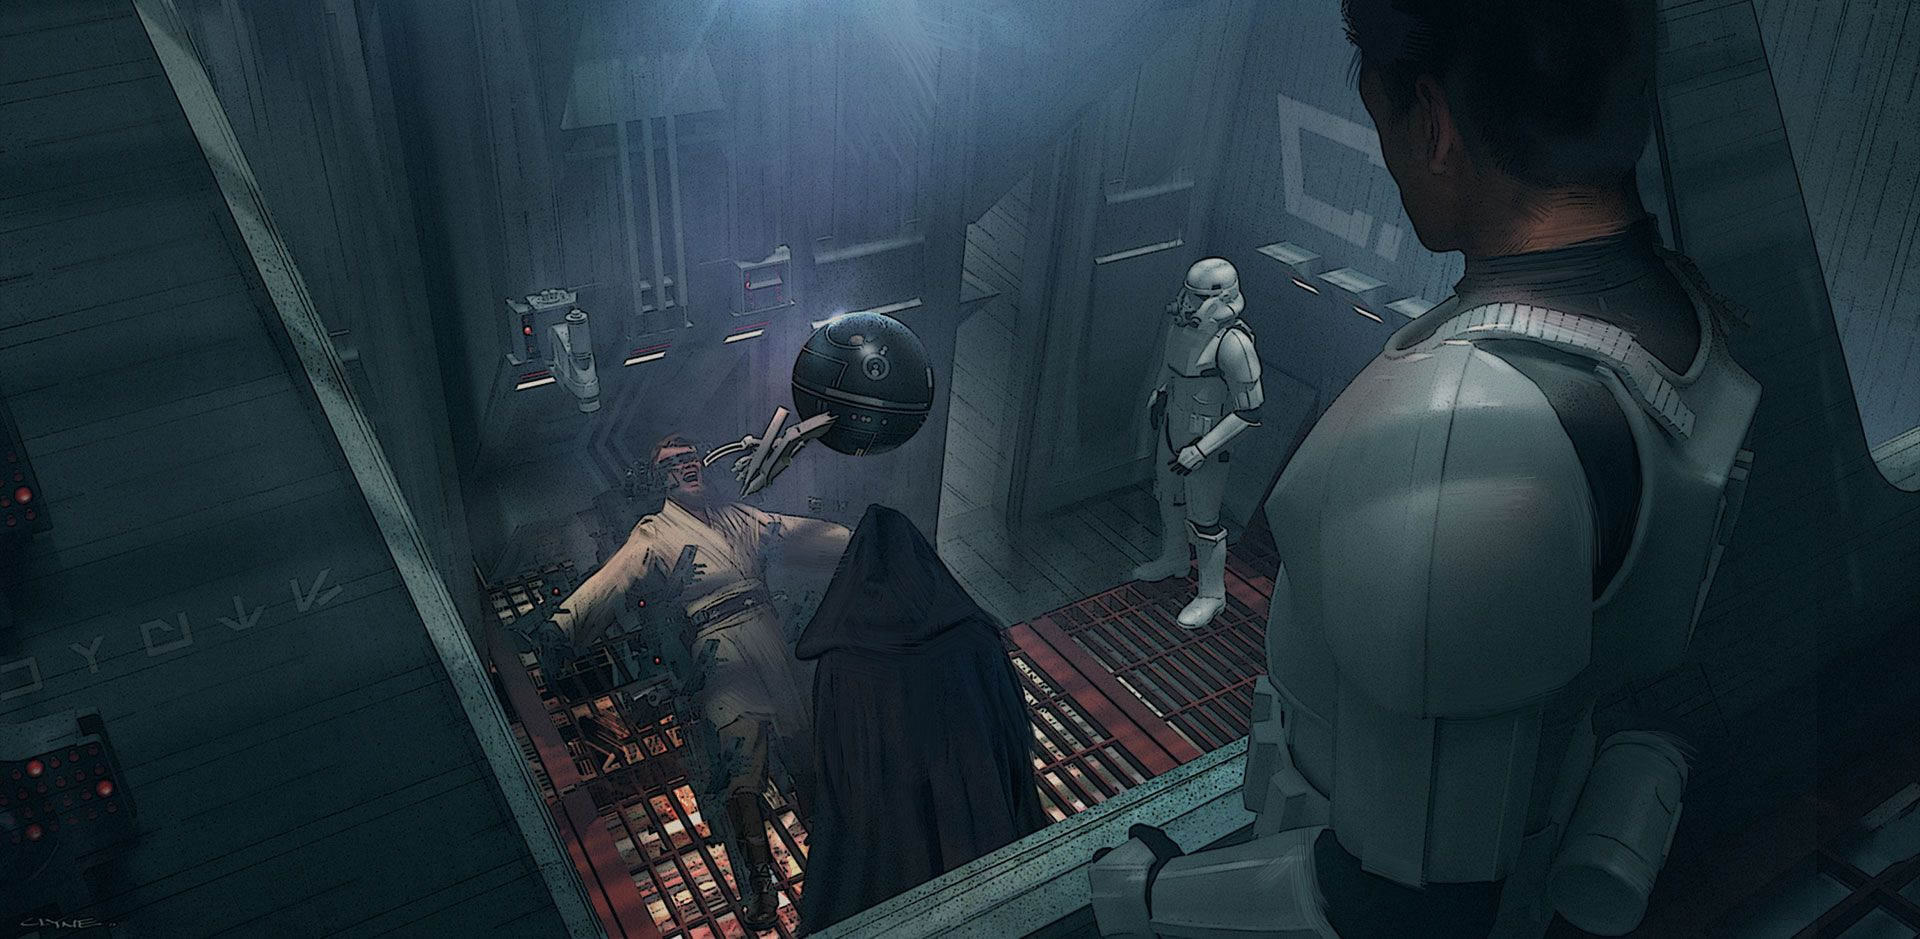 Star Wars The Force Awakens Concept Art Images Revealed